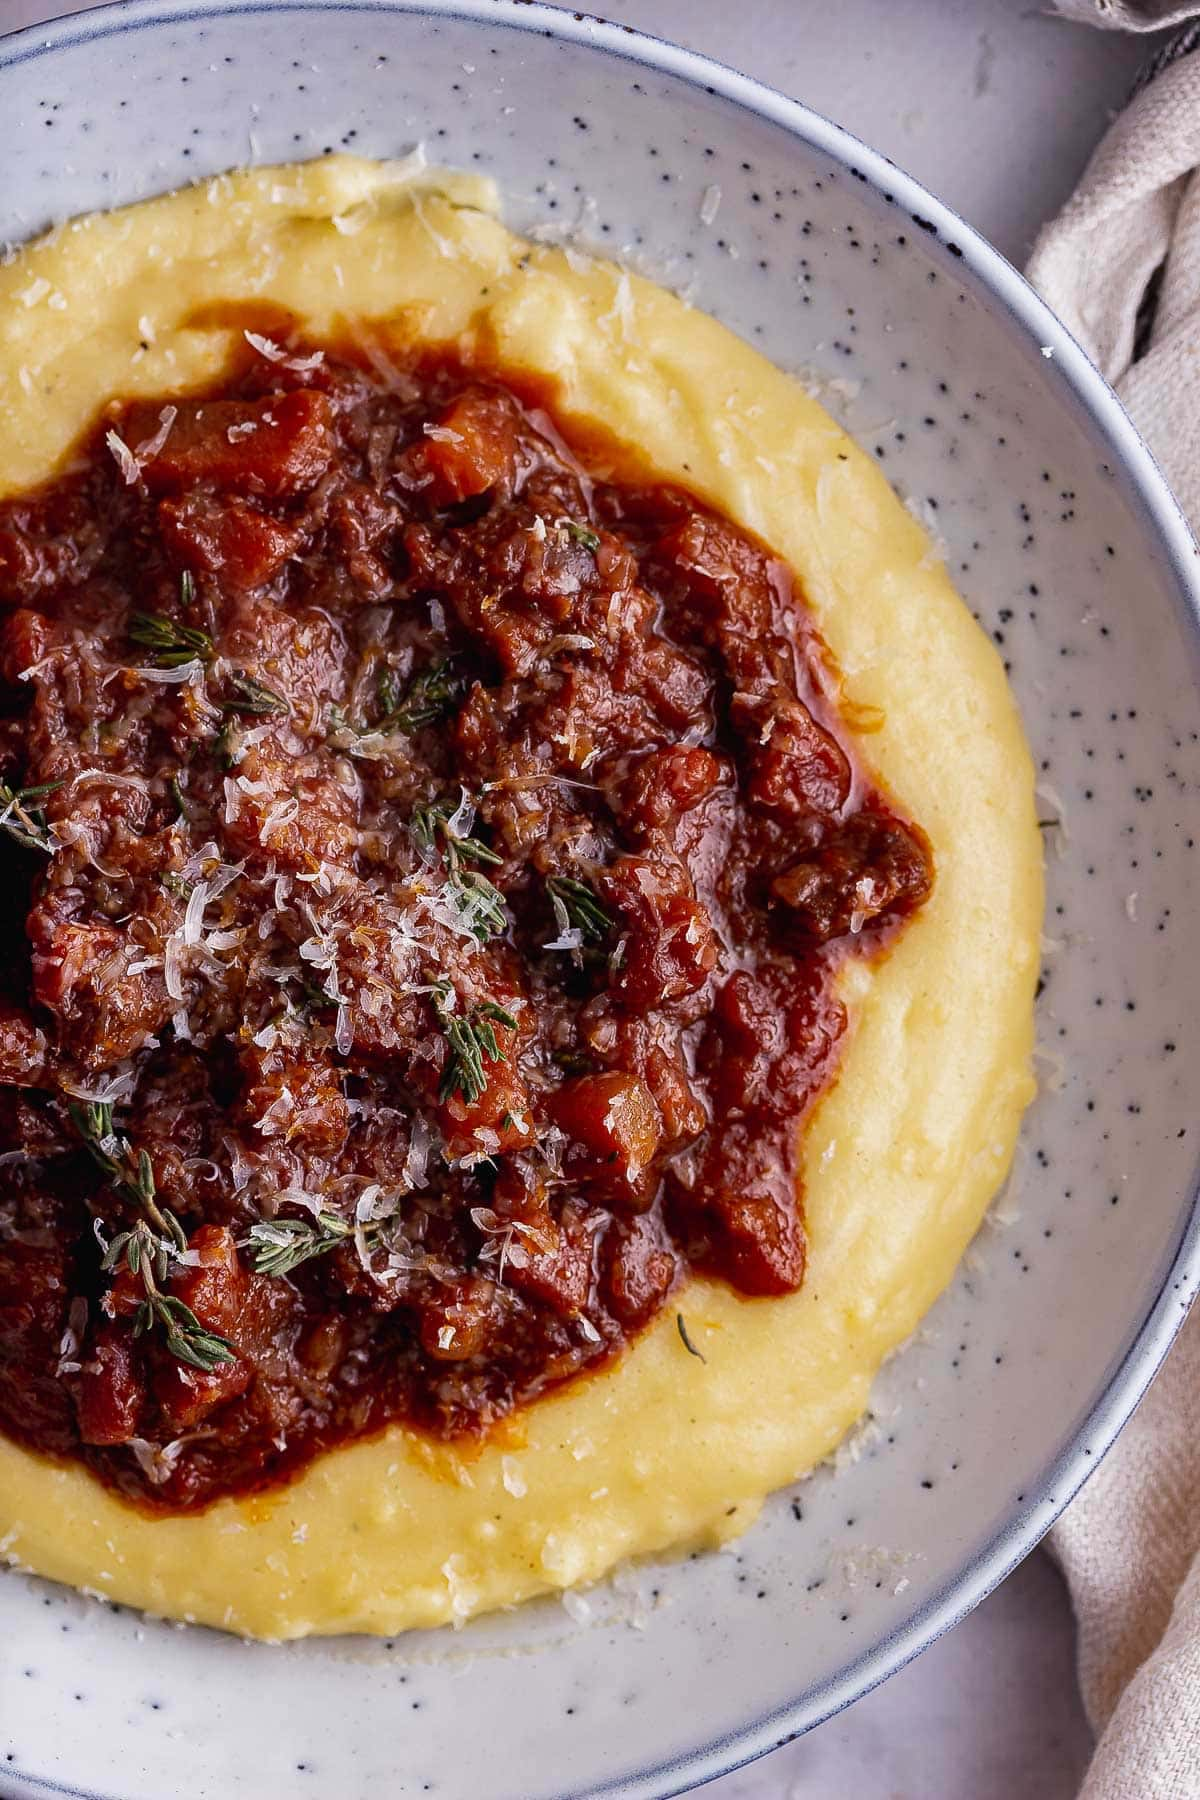 Overhead close up of braised beef stew on polenta